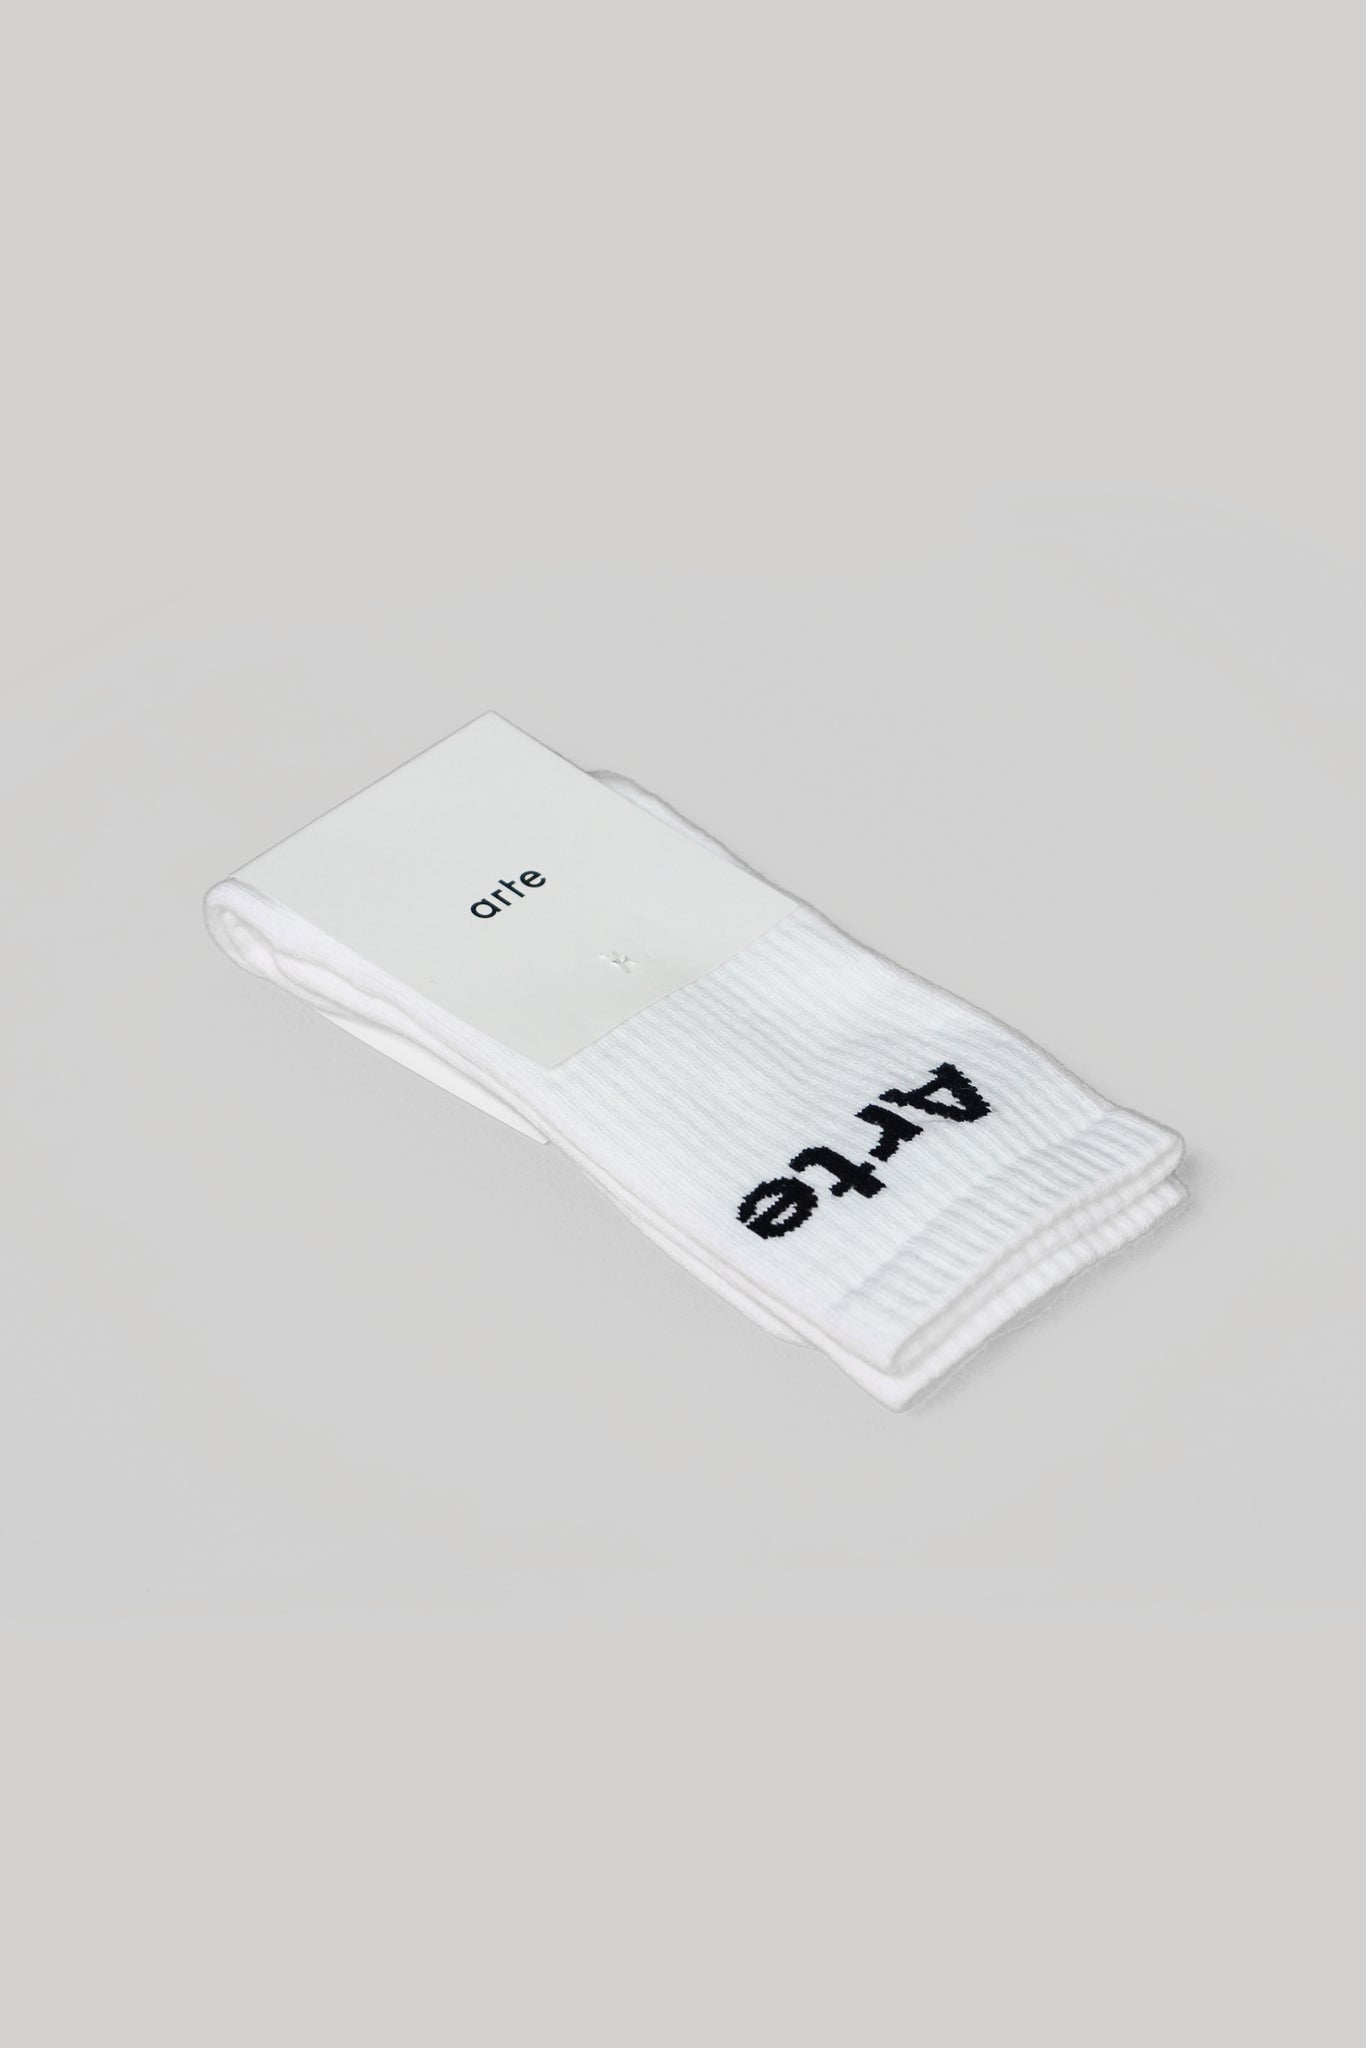 Small Arte Socks White - Arte Antwerp